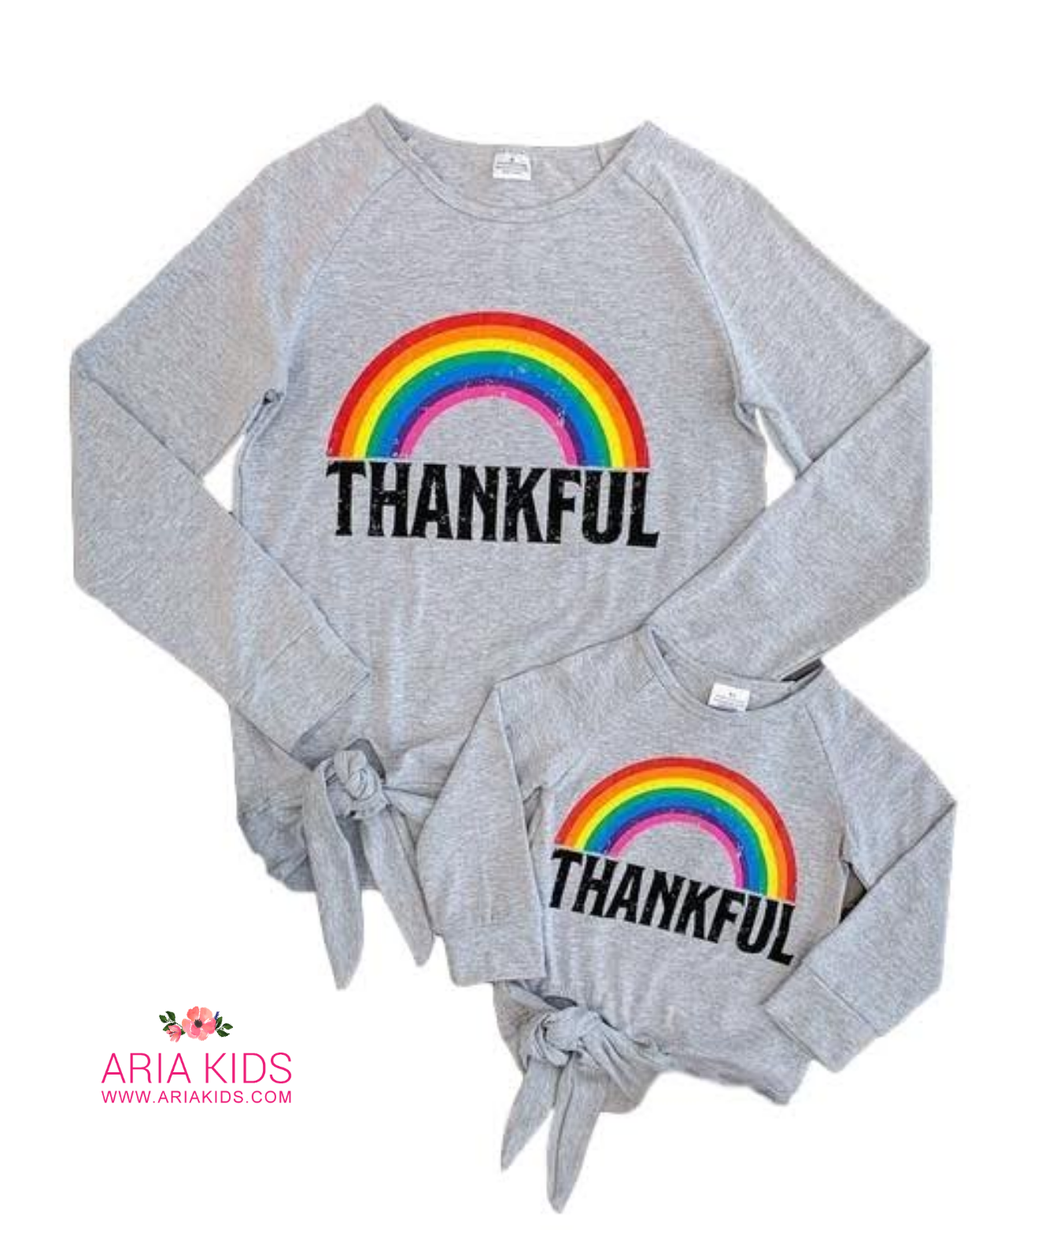 Mommy & Me Rainbow Thankful Shirts - ARIA KIDS